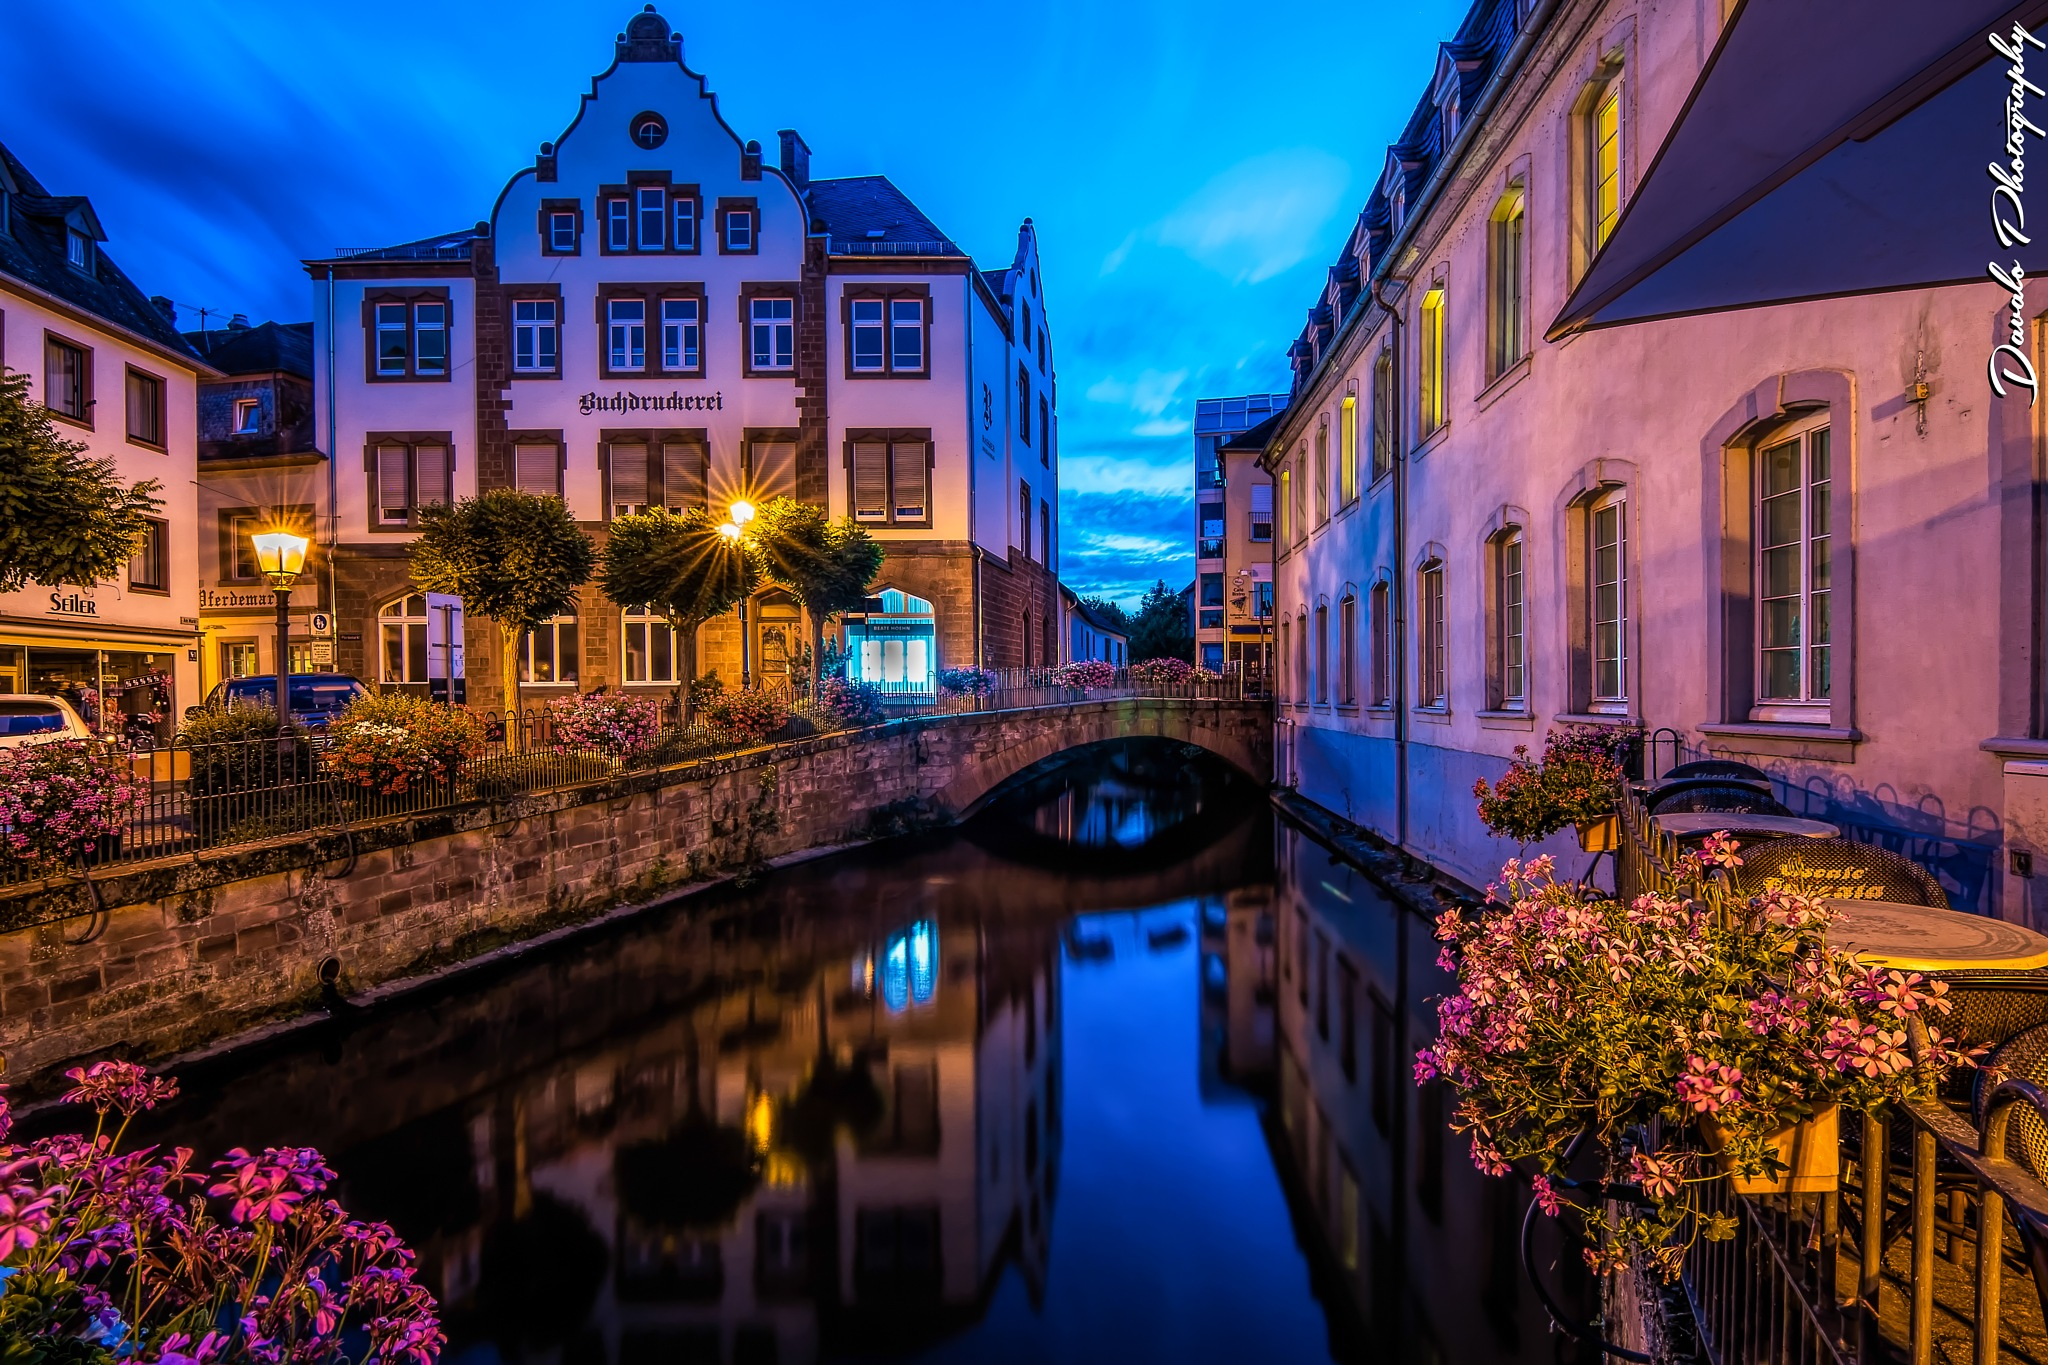 Saarburg City By Night by Davalo Photography